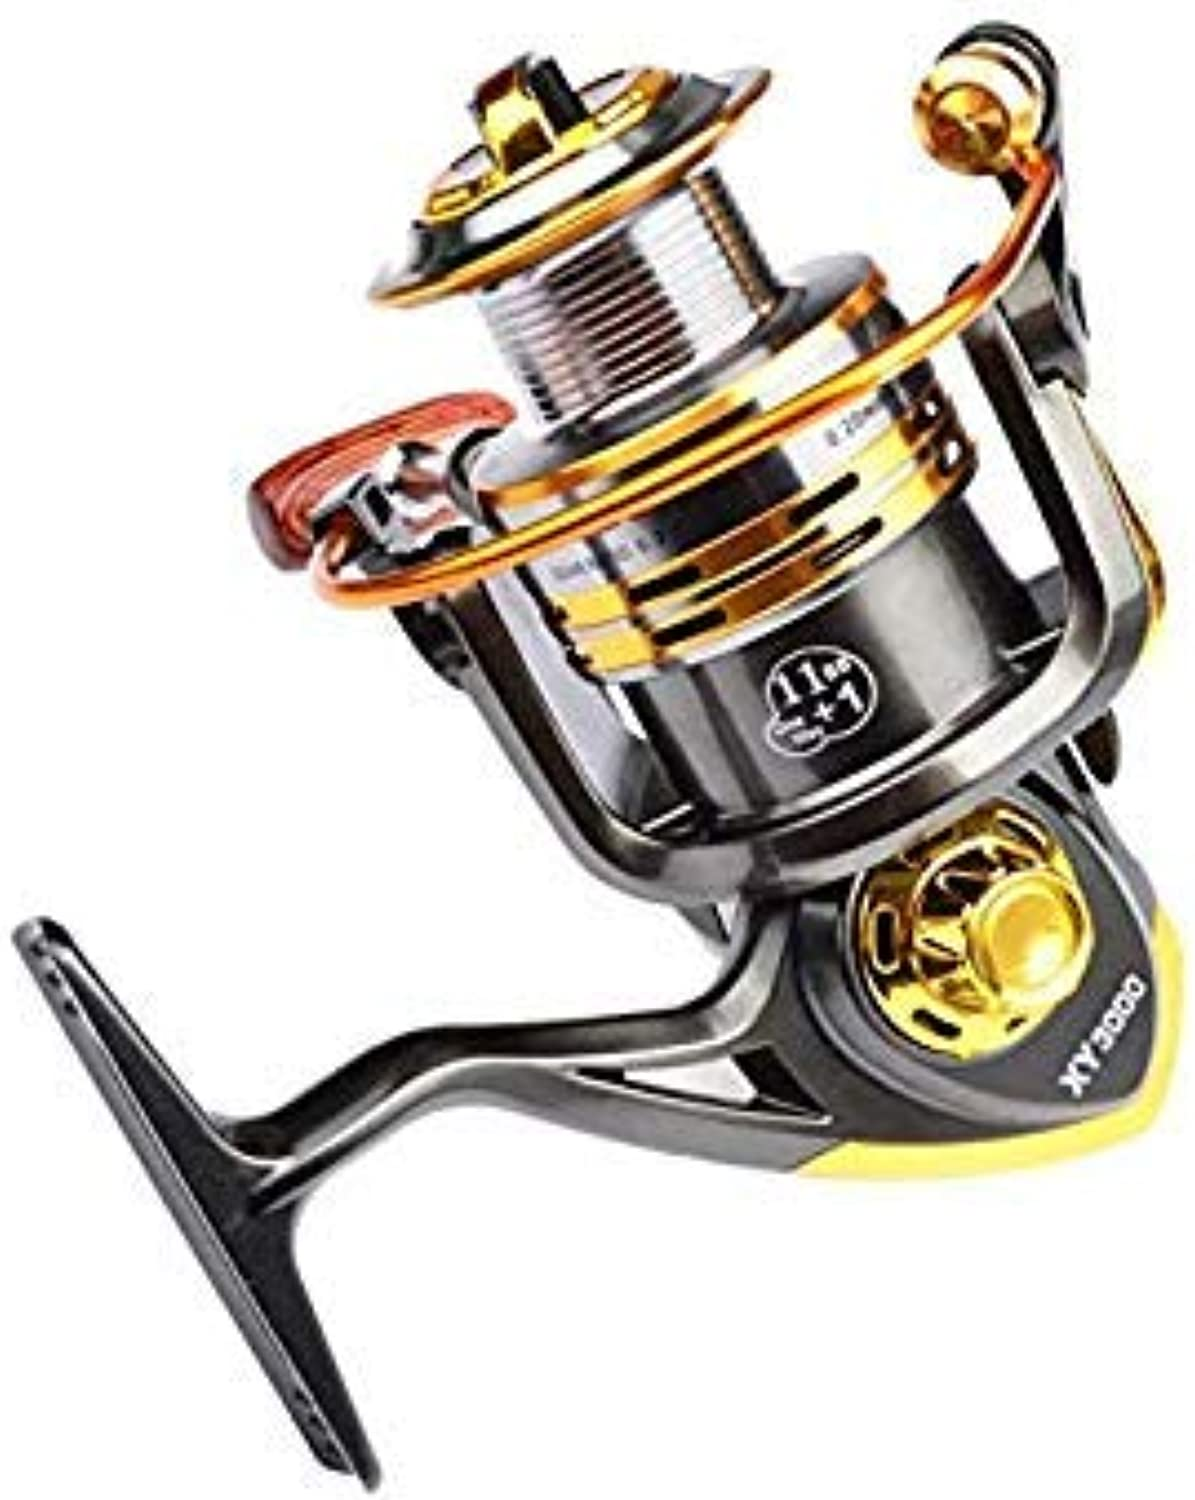 GEOPONICS Aluminum Alloy 12B Bearing Balls Spinning Fishing Reel 2000 3000 Series Spinning Reel Boat Rock Fishing Wheel color XY3000 Bearing Quantity 12 Spool Capacity Other